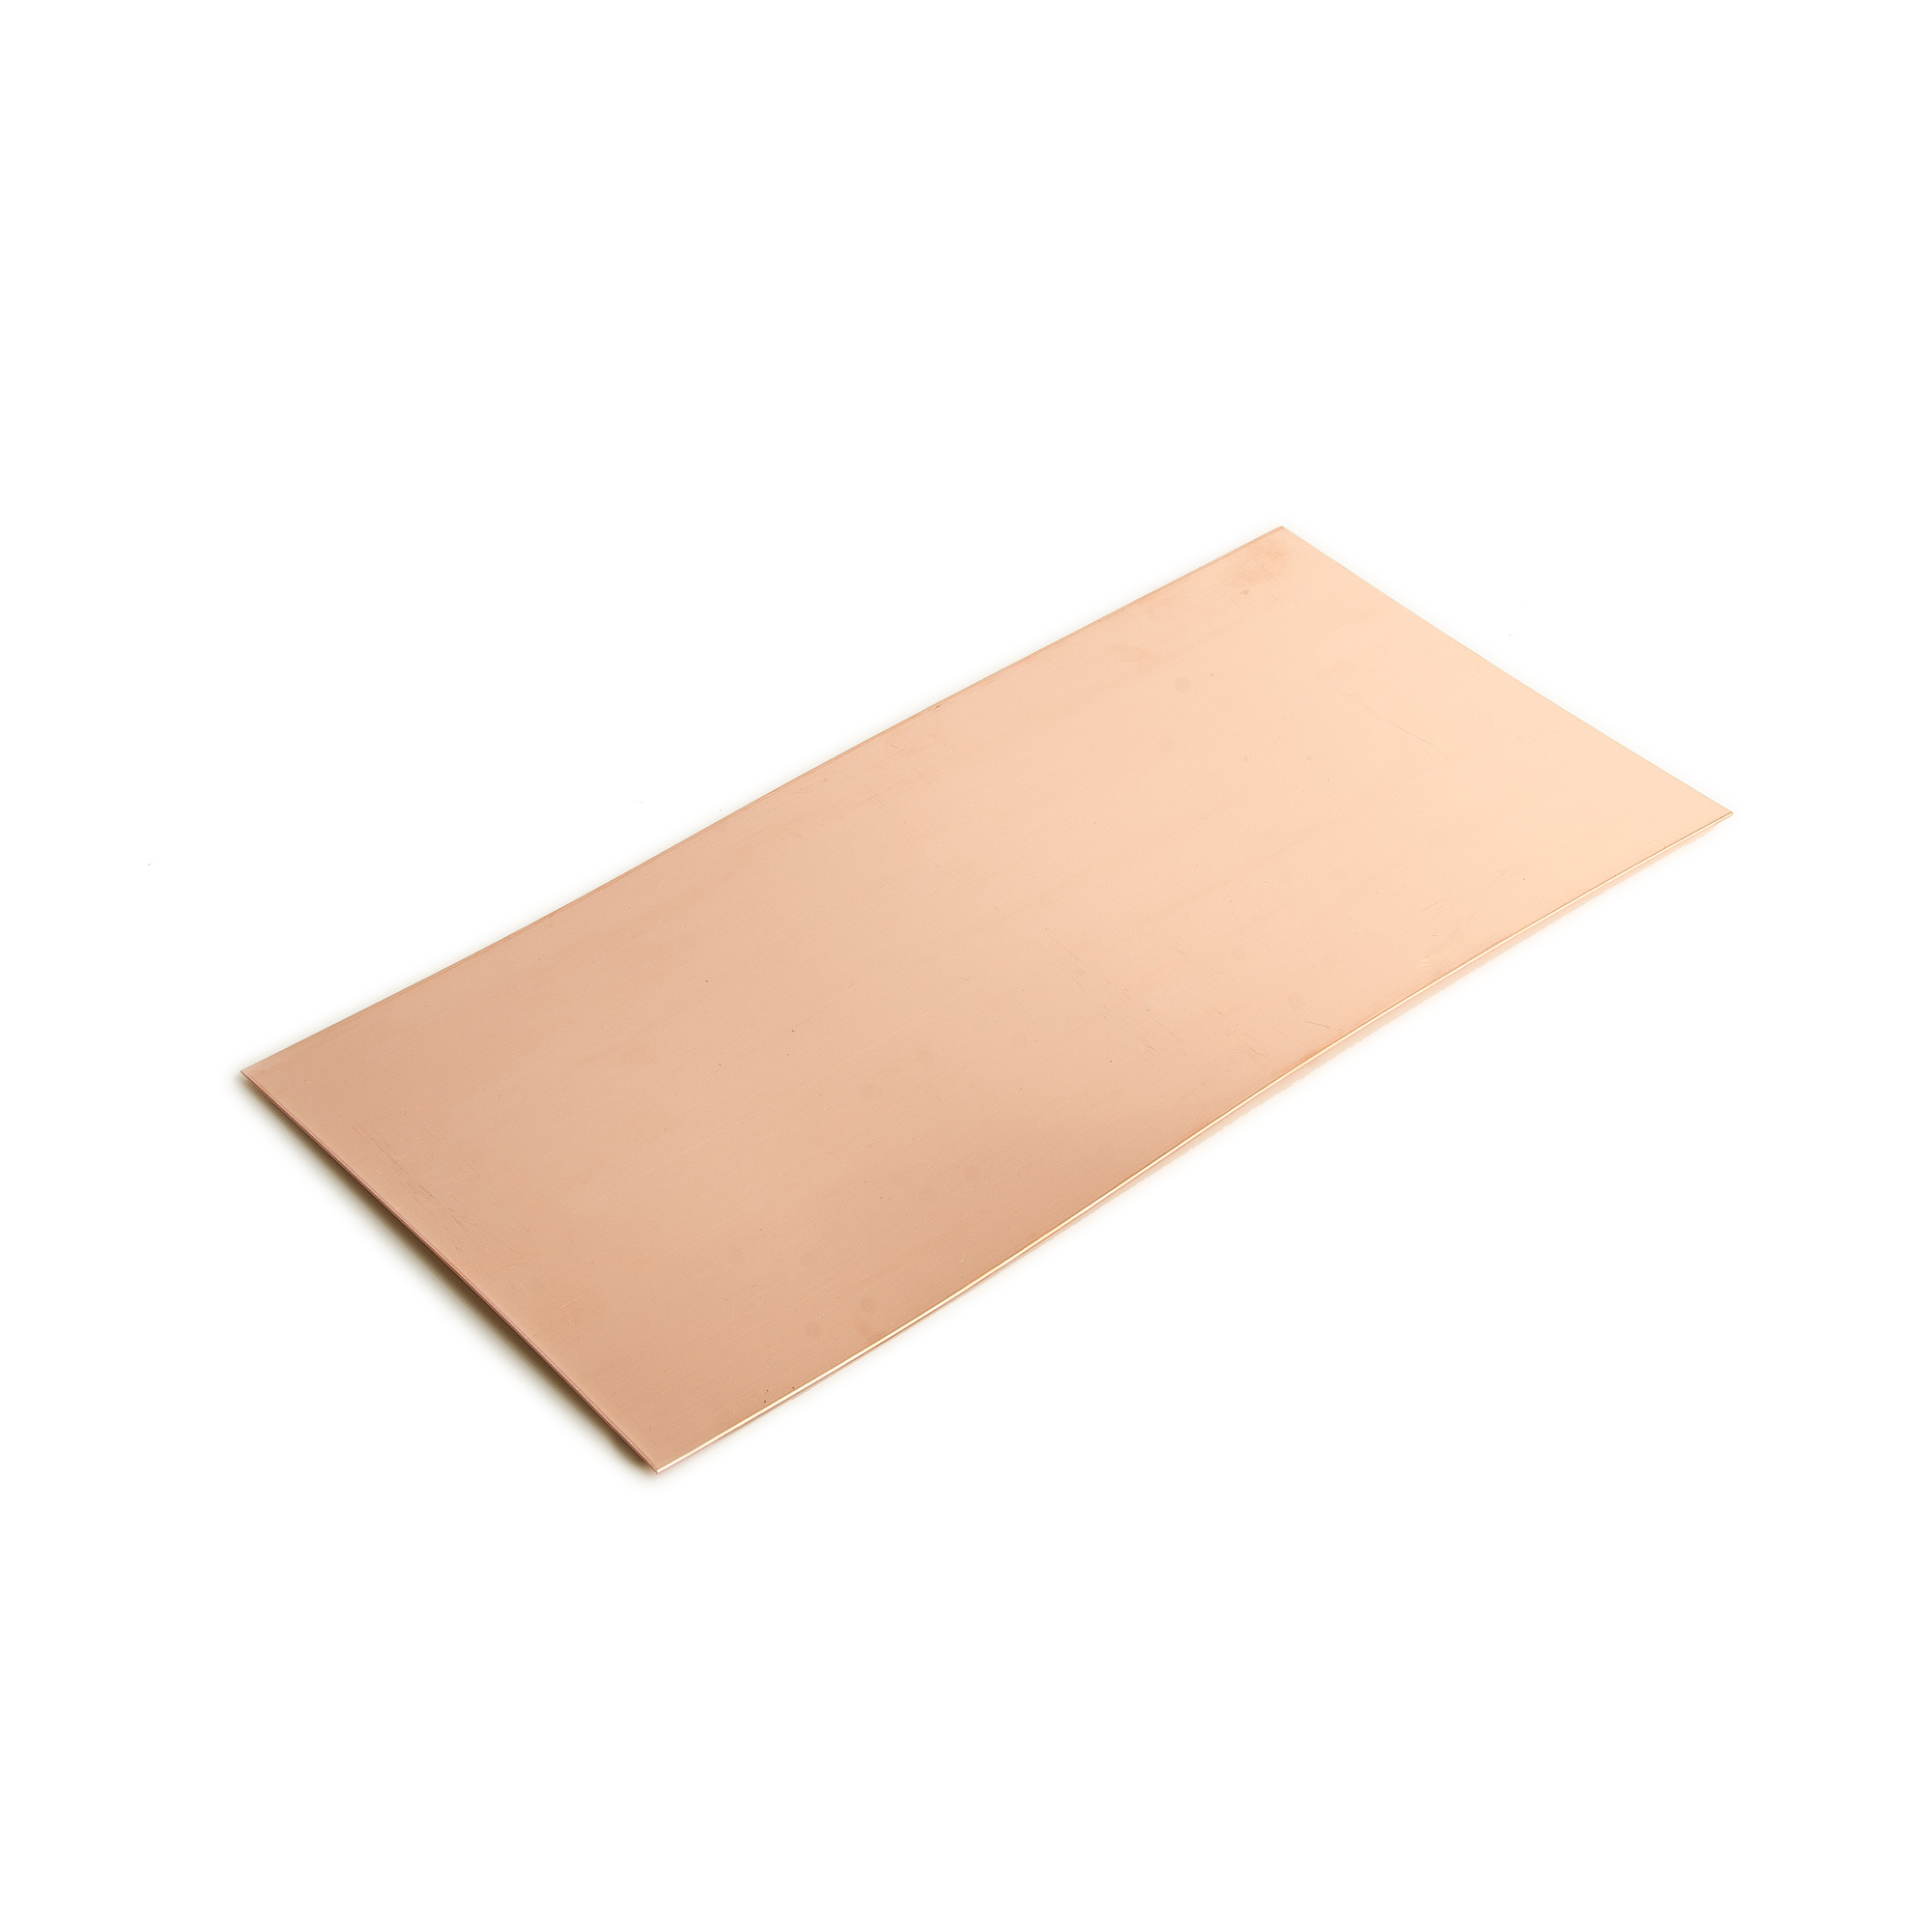 28 Gauge 0.012 Dead Soft Copper Sheet Metal - 6x12 Inch